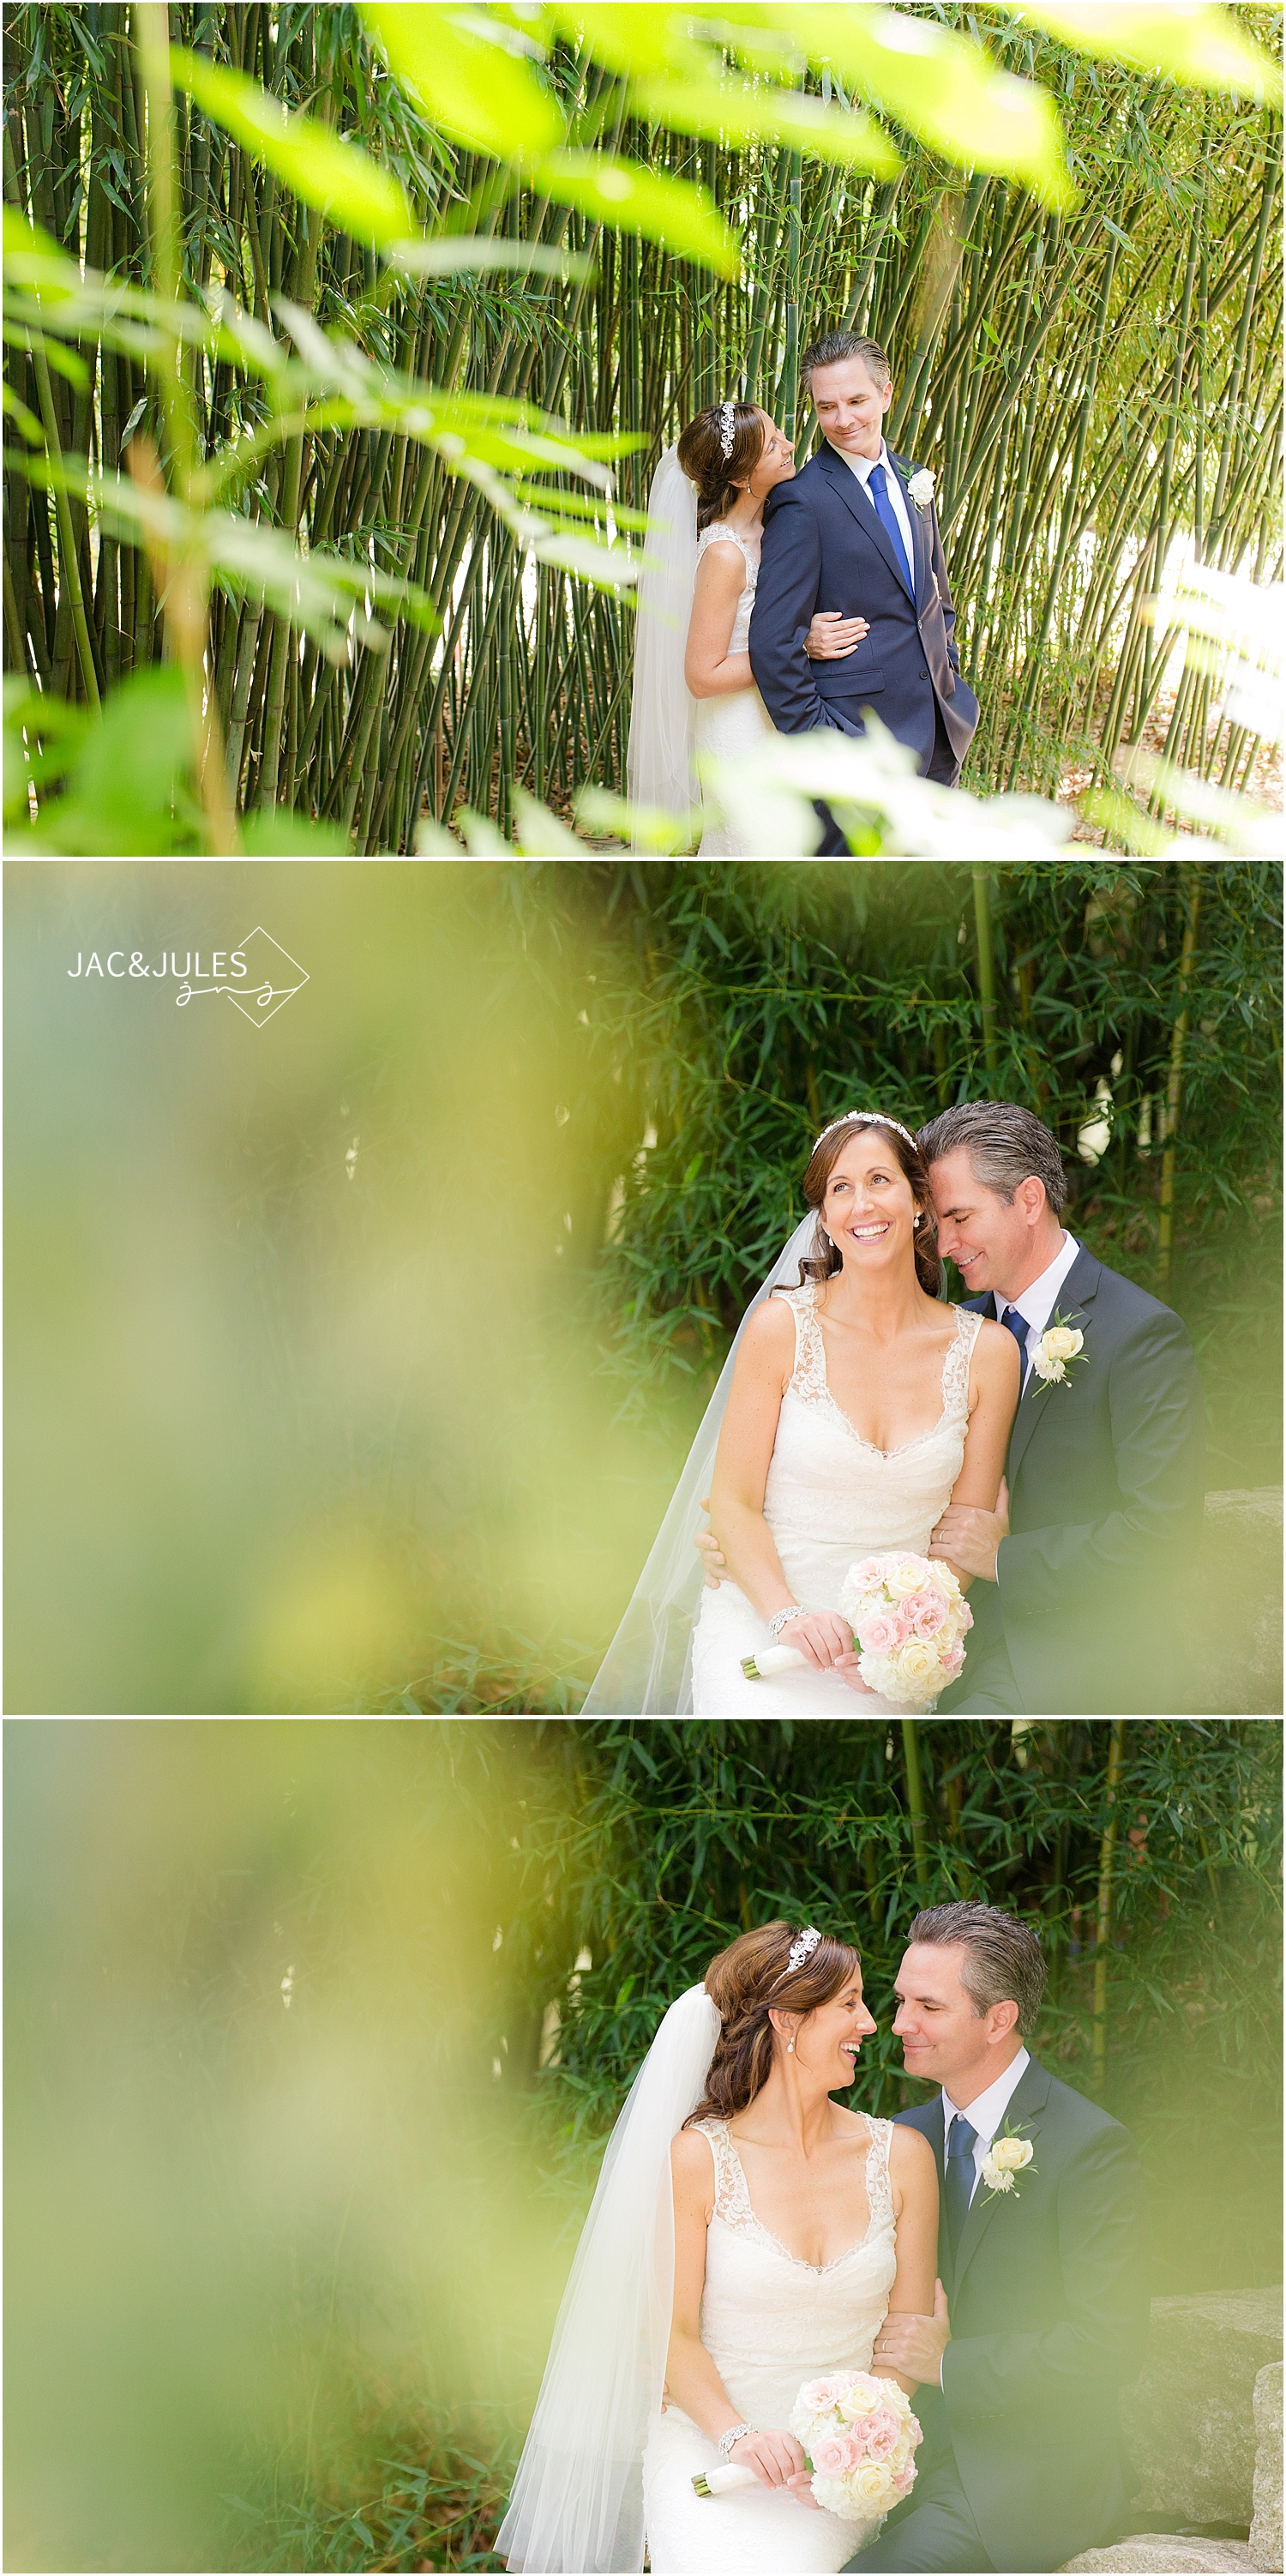 jacnjules photographs bride and groom on their wedding day at Grounds for Sculpture in Hamilton, NJ